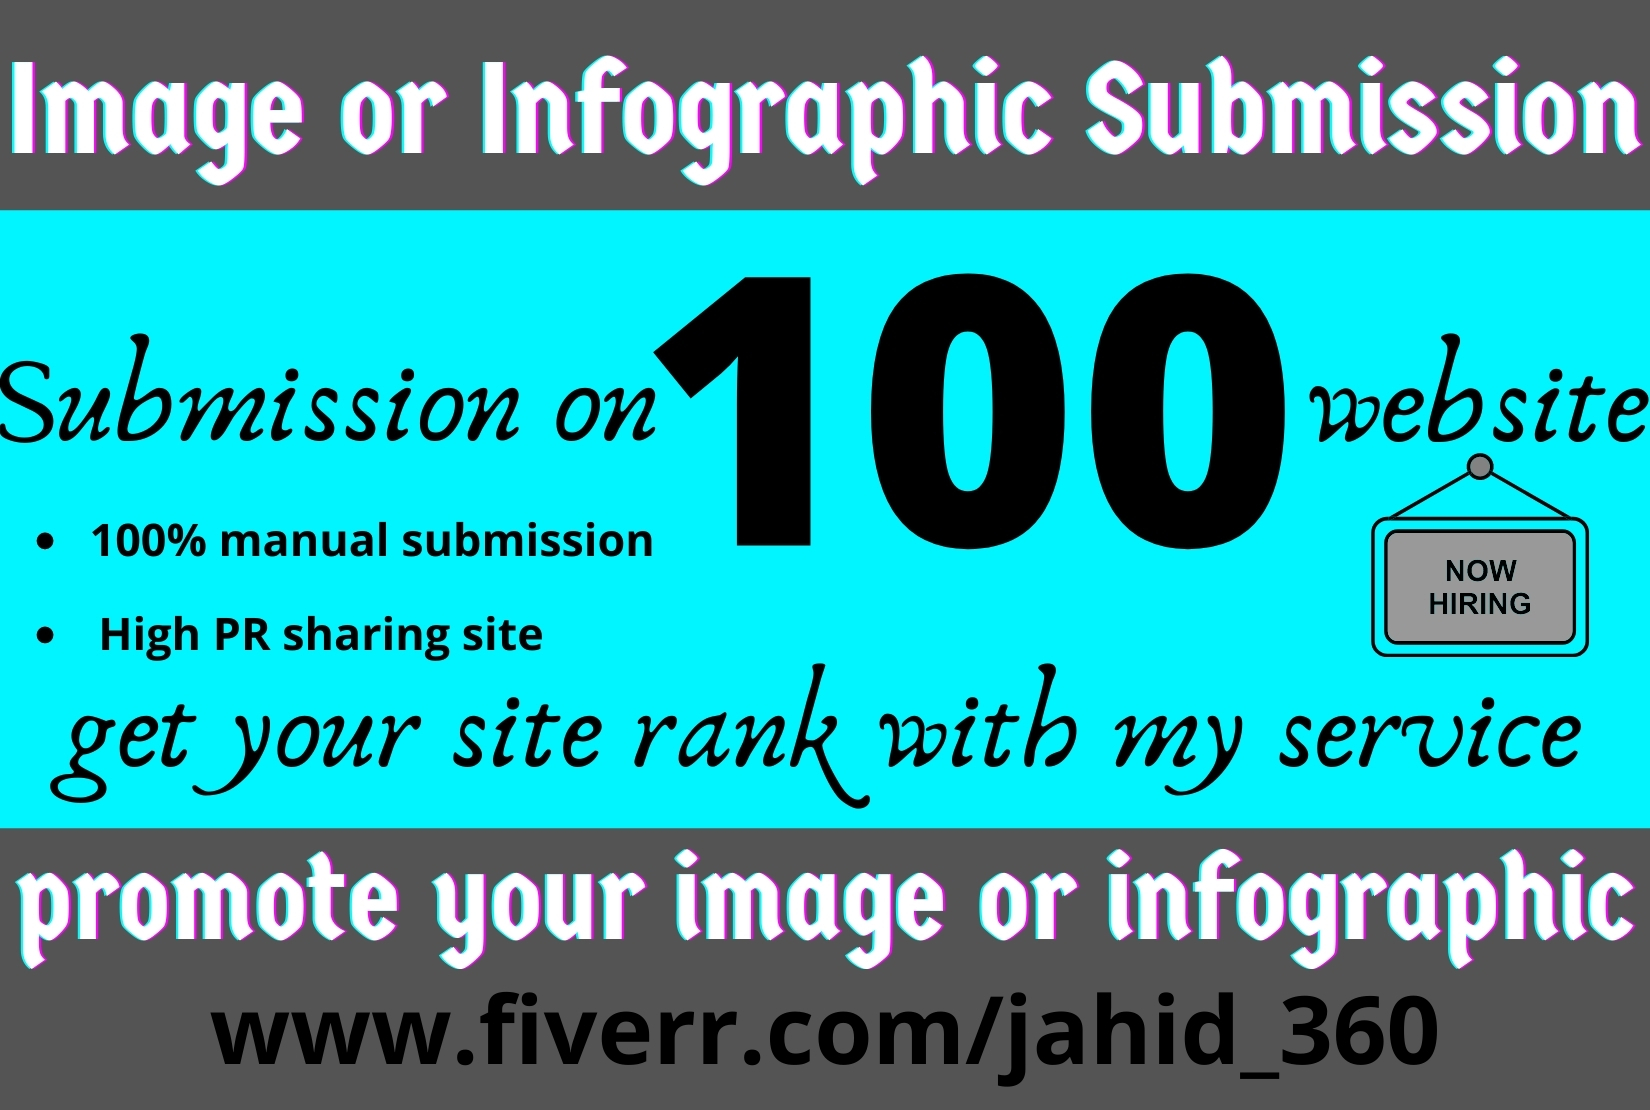 image or infographic submission in top 100 sites